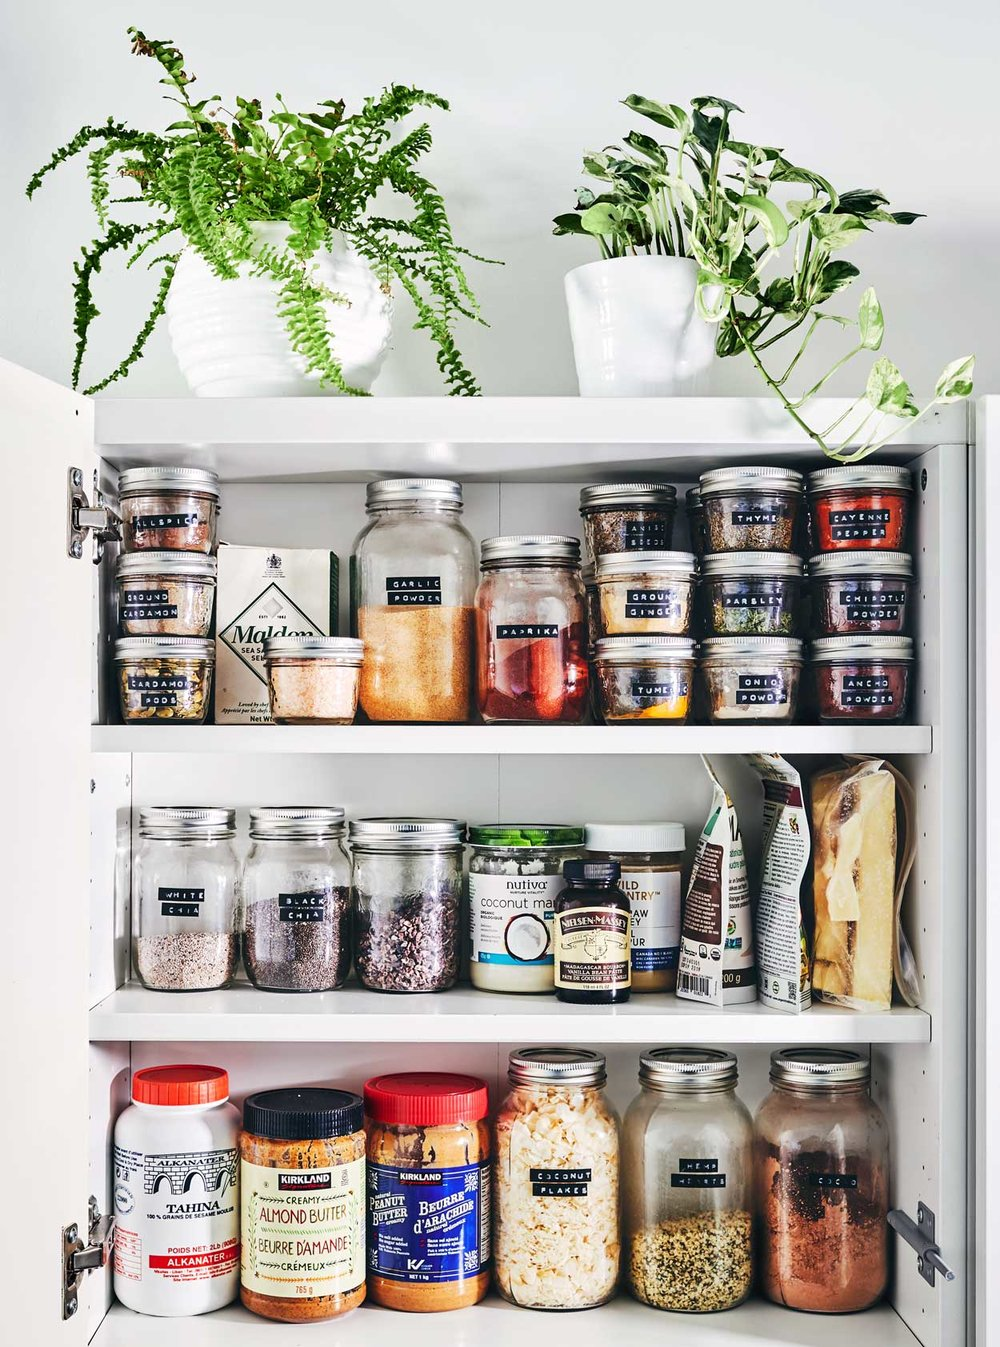 Our Pantry - The key to a healthy, inspired kitchen is an organized one. While your pantry doesn't need to be fully-stocked at all times, having a reliable set of go-to ingredients will allow you to quickly throw a meal together. Say hello to stress-free meals at home, and goodbye to sad, overpriced takeout.We've written up all the behind-the-scenes of what we stock in our pantry, tips on how to buy/prepare them, and specific brands we'd recommend.Check out all the details here→